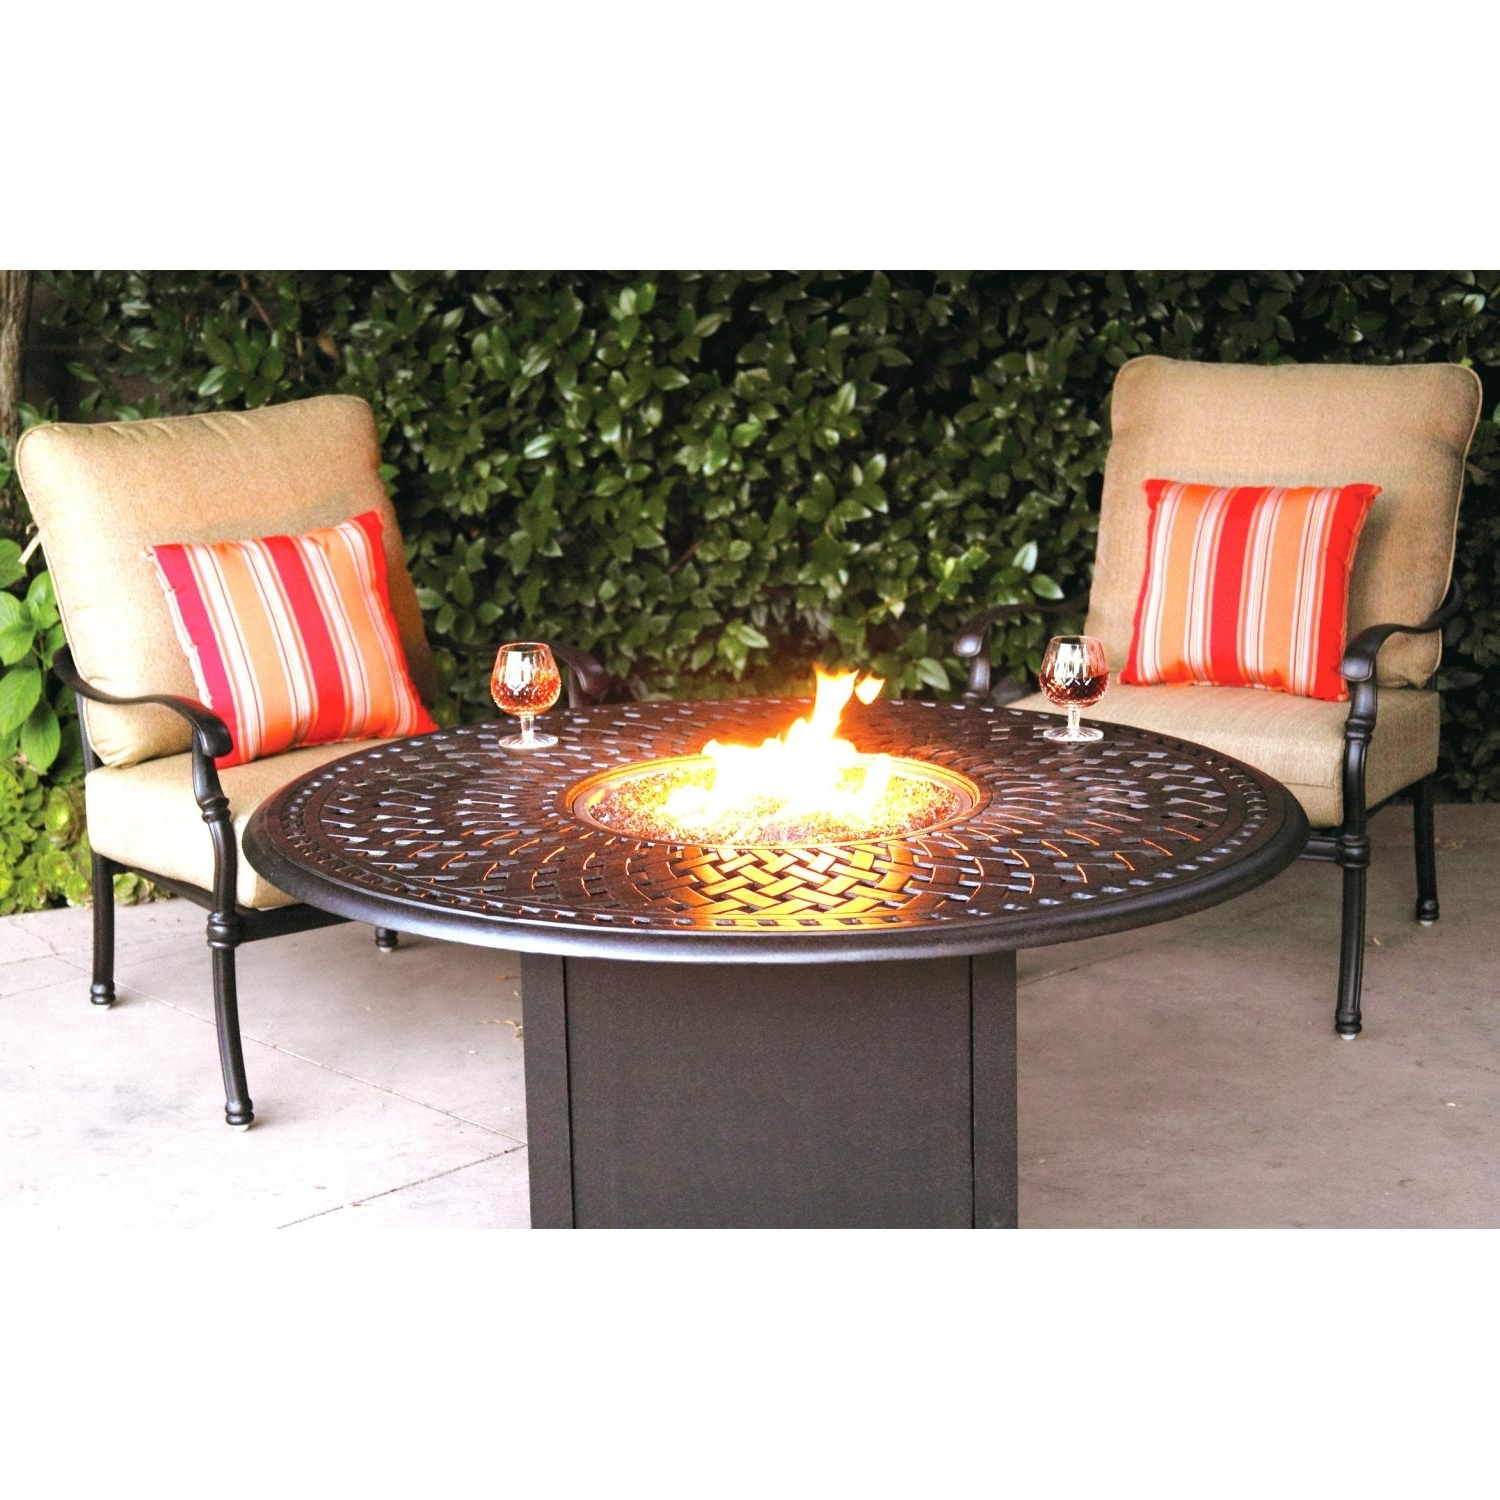 Darlee Florence 3 Piece Aluminum Patio Fire Pit Seating Set Intended For Fashionable Patio Furniture Conversation Sets With Fire Pit (Gallery 9 of 20)